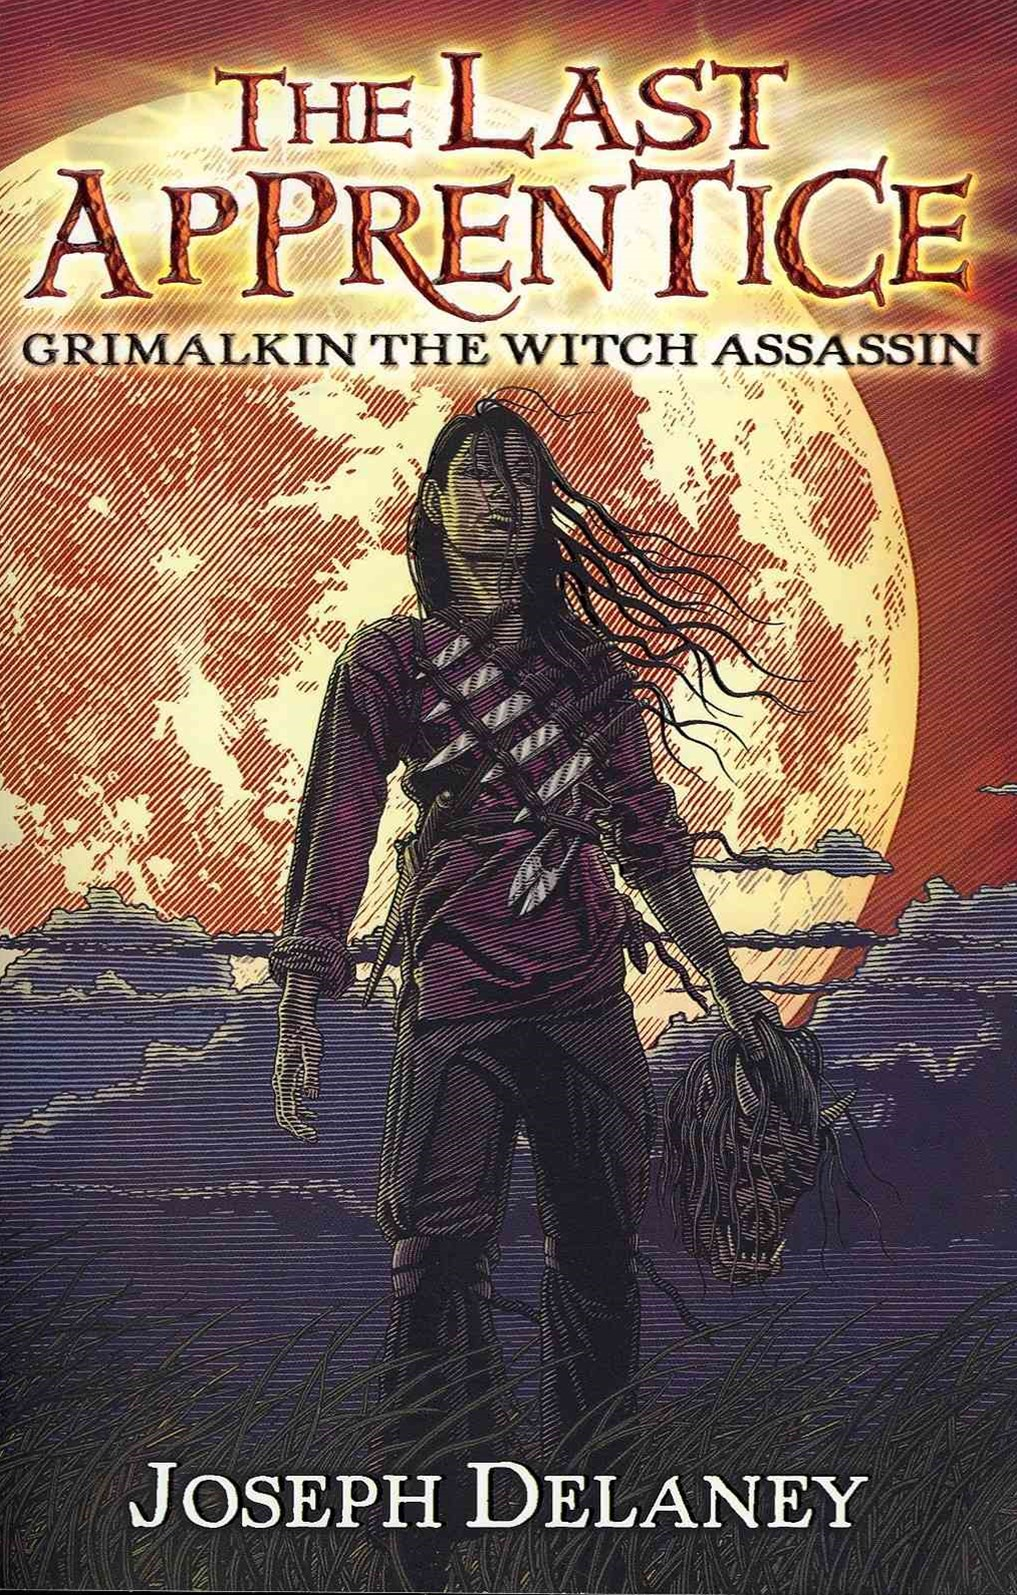 Grimalkin the Witch Assassin